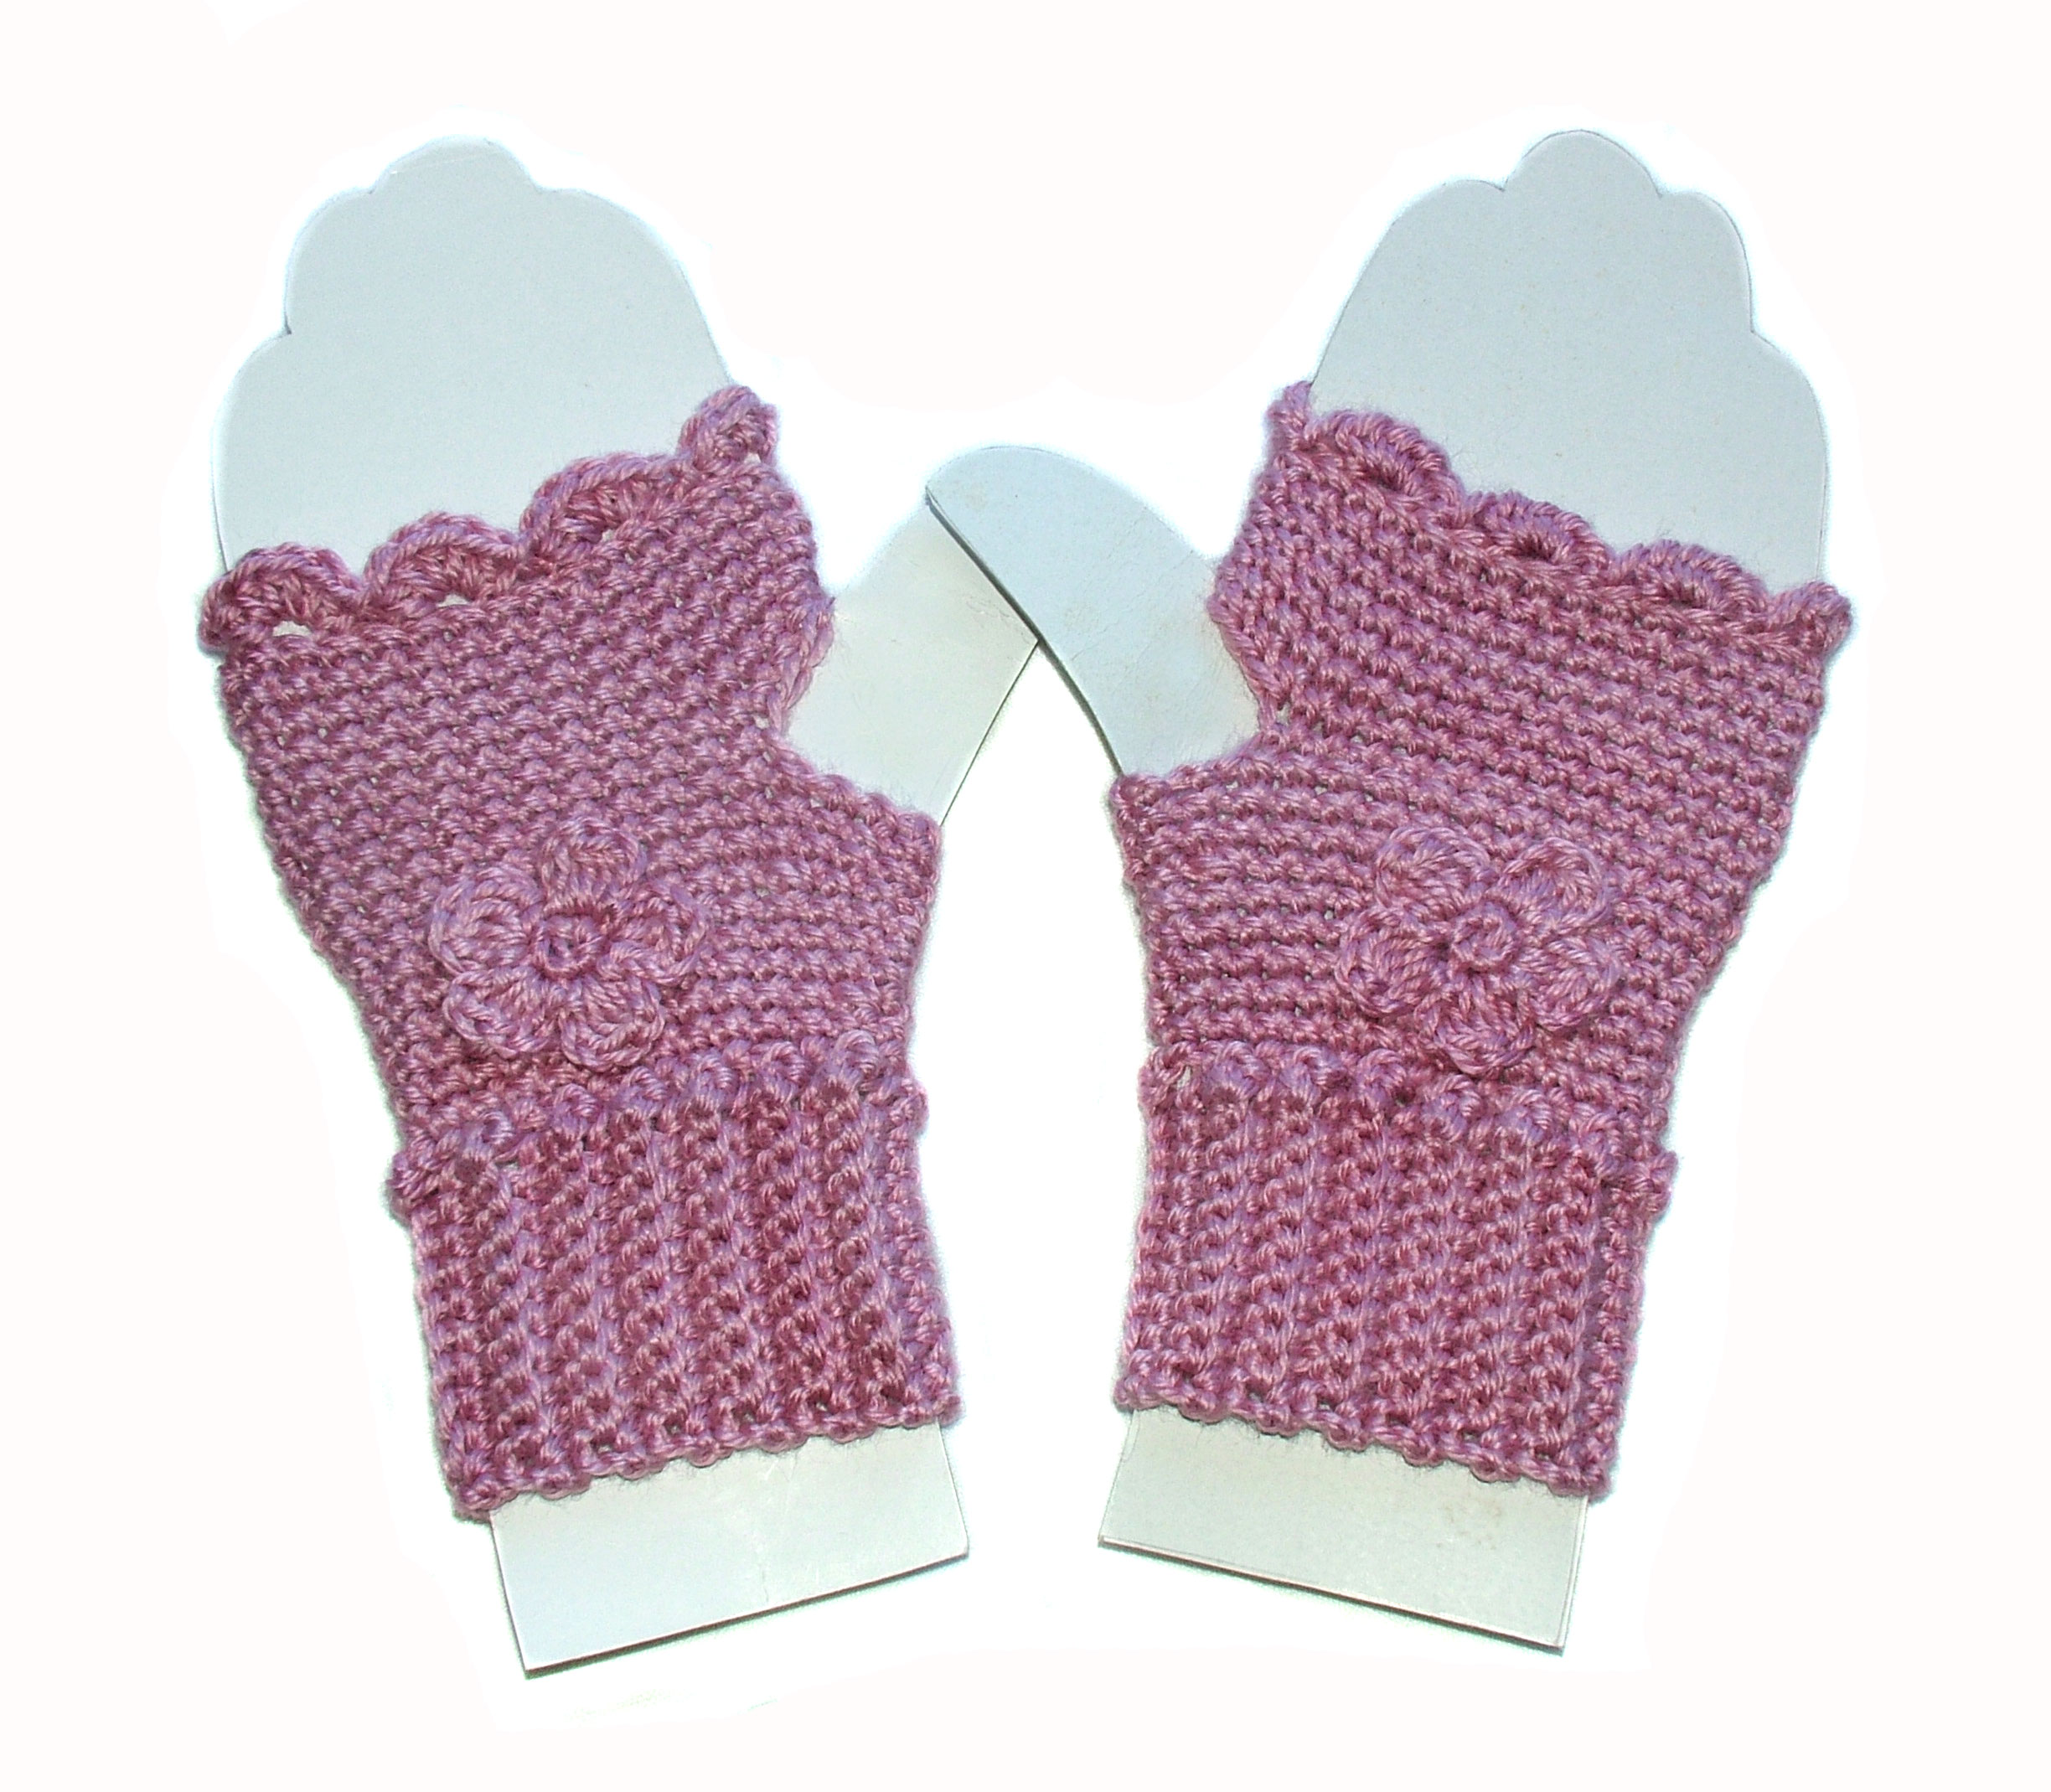 Crochet Patterns: Mittens and Gloves - Yahoo! Voices - voices